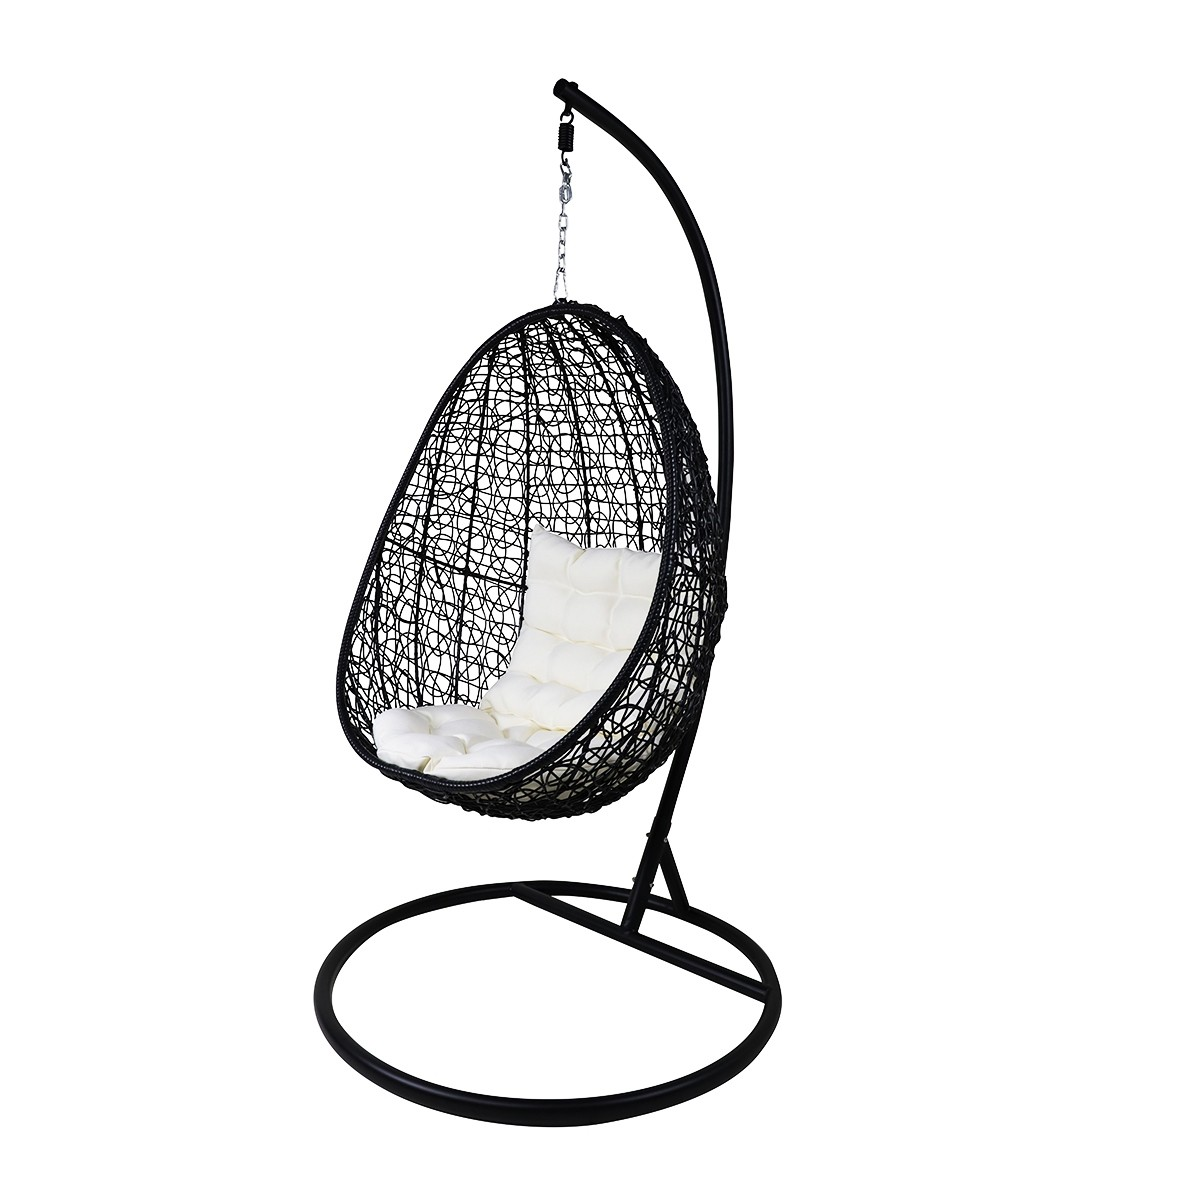 Black Cocoon Swing Chair White Cushion Furniture Home Decor Fortytwo